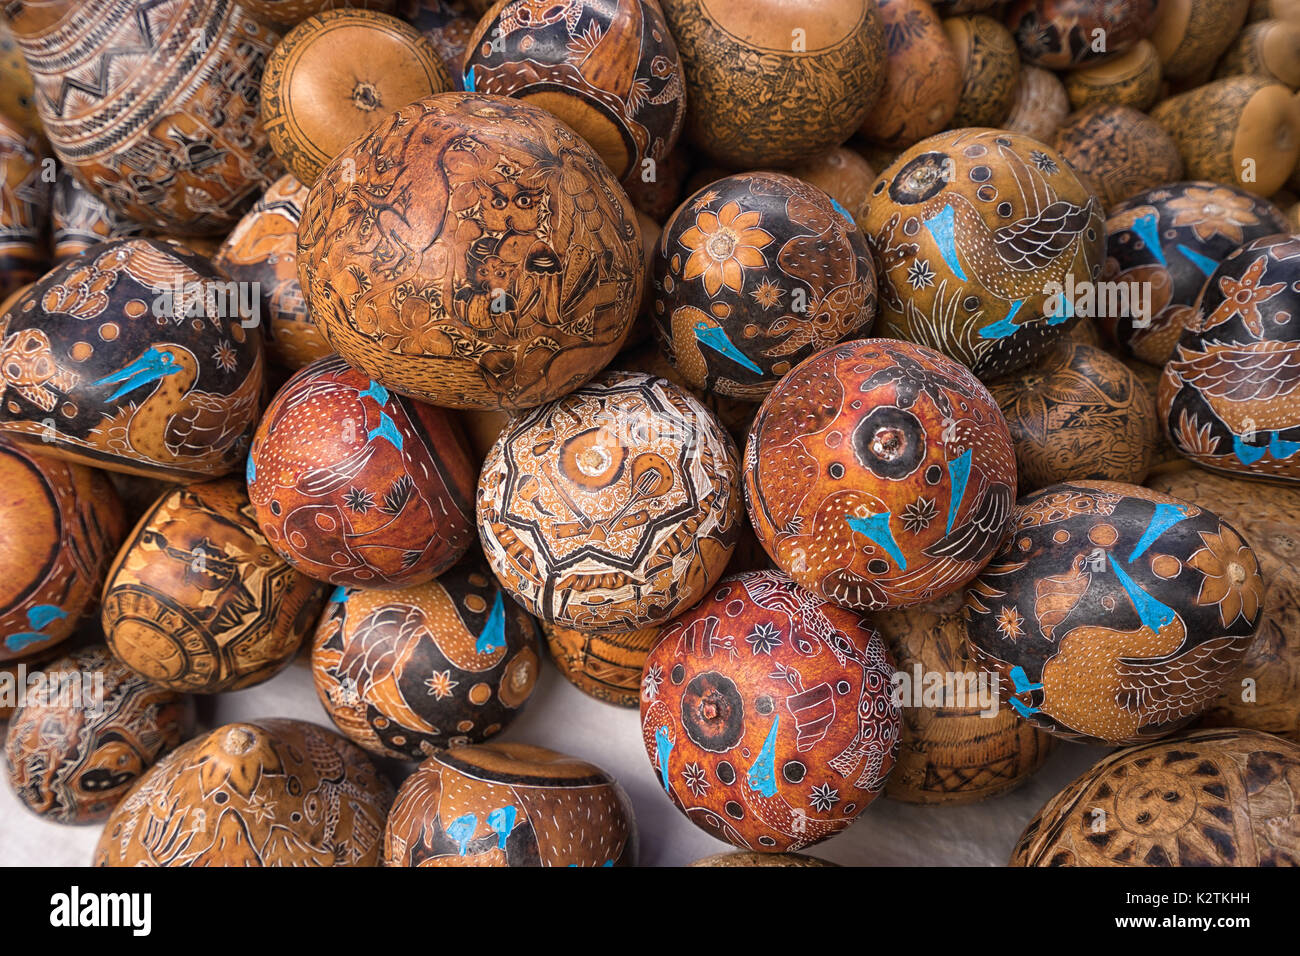 April 29, 2017 Otavalo, Ecuador: indigenous quechua crafts made of coconut shell  selling on the street in the Saturday market - Stock Image